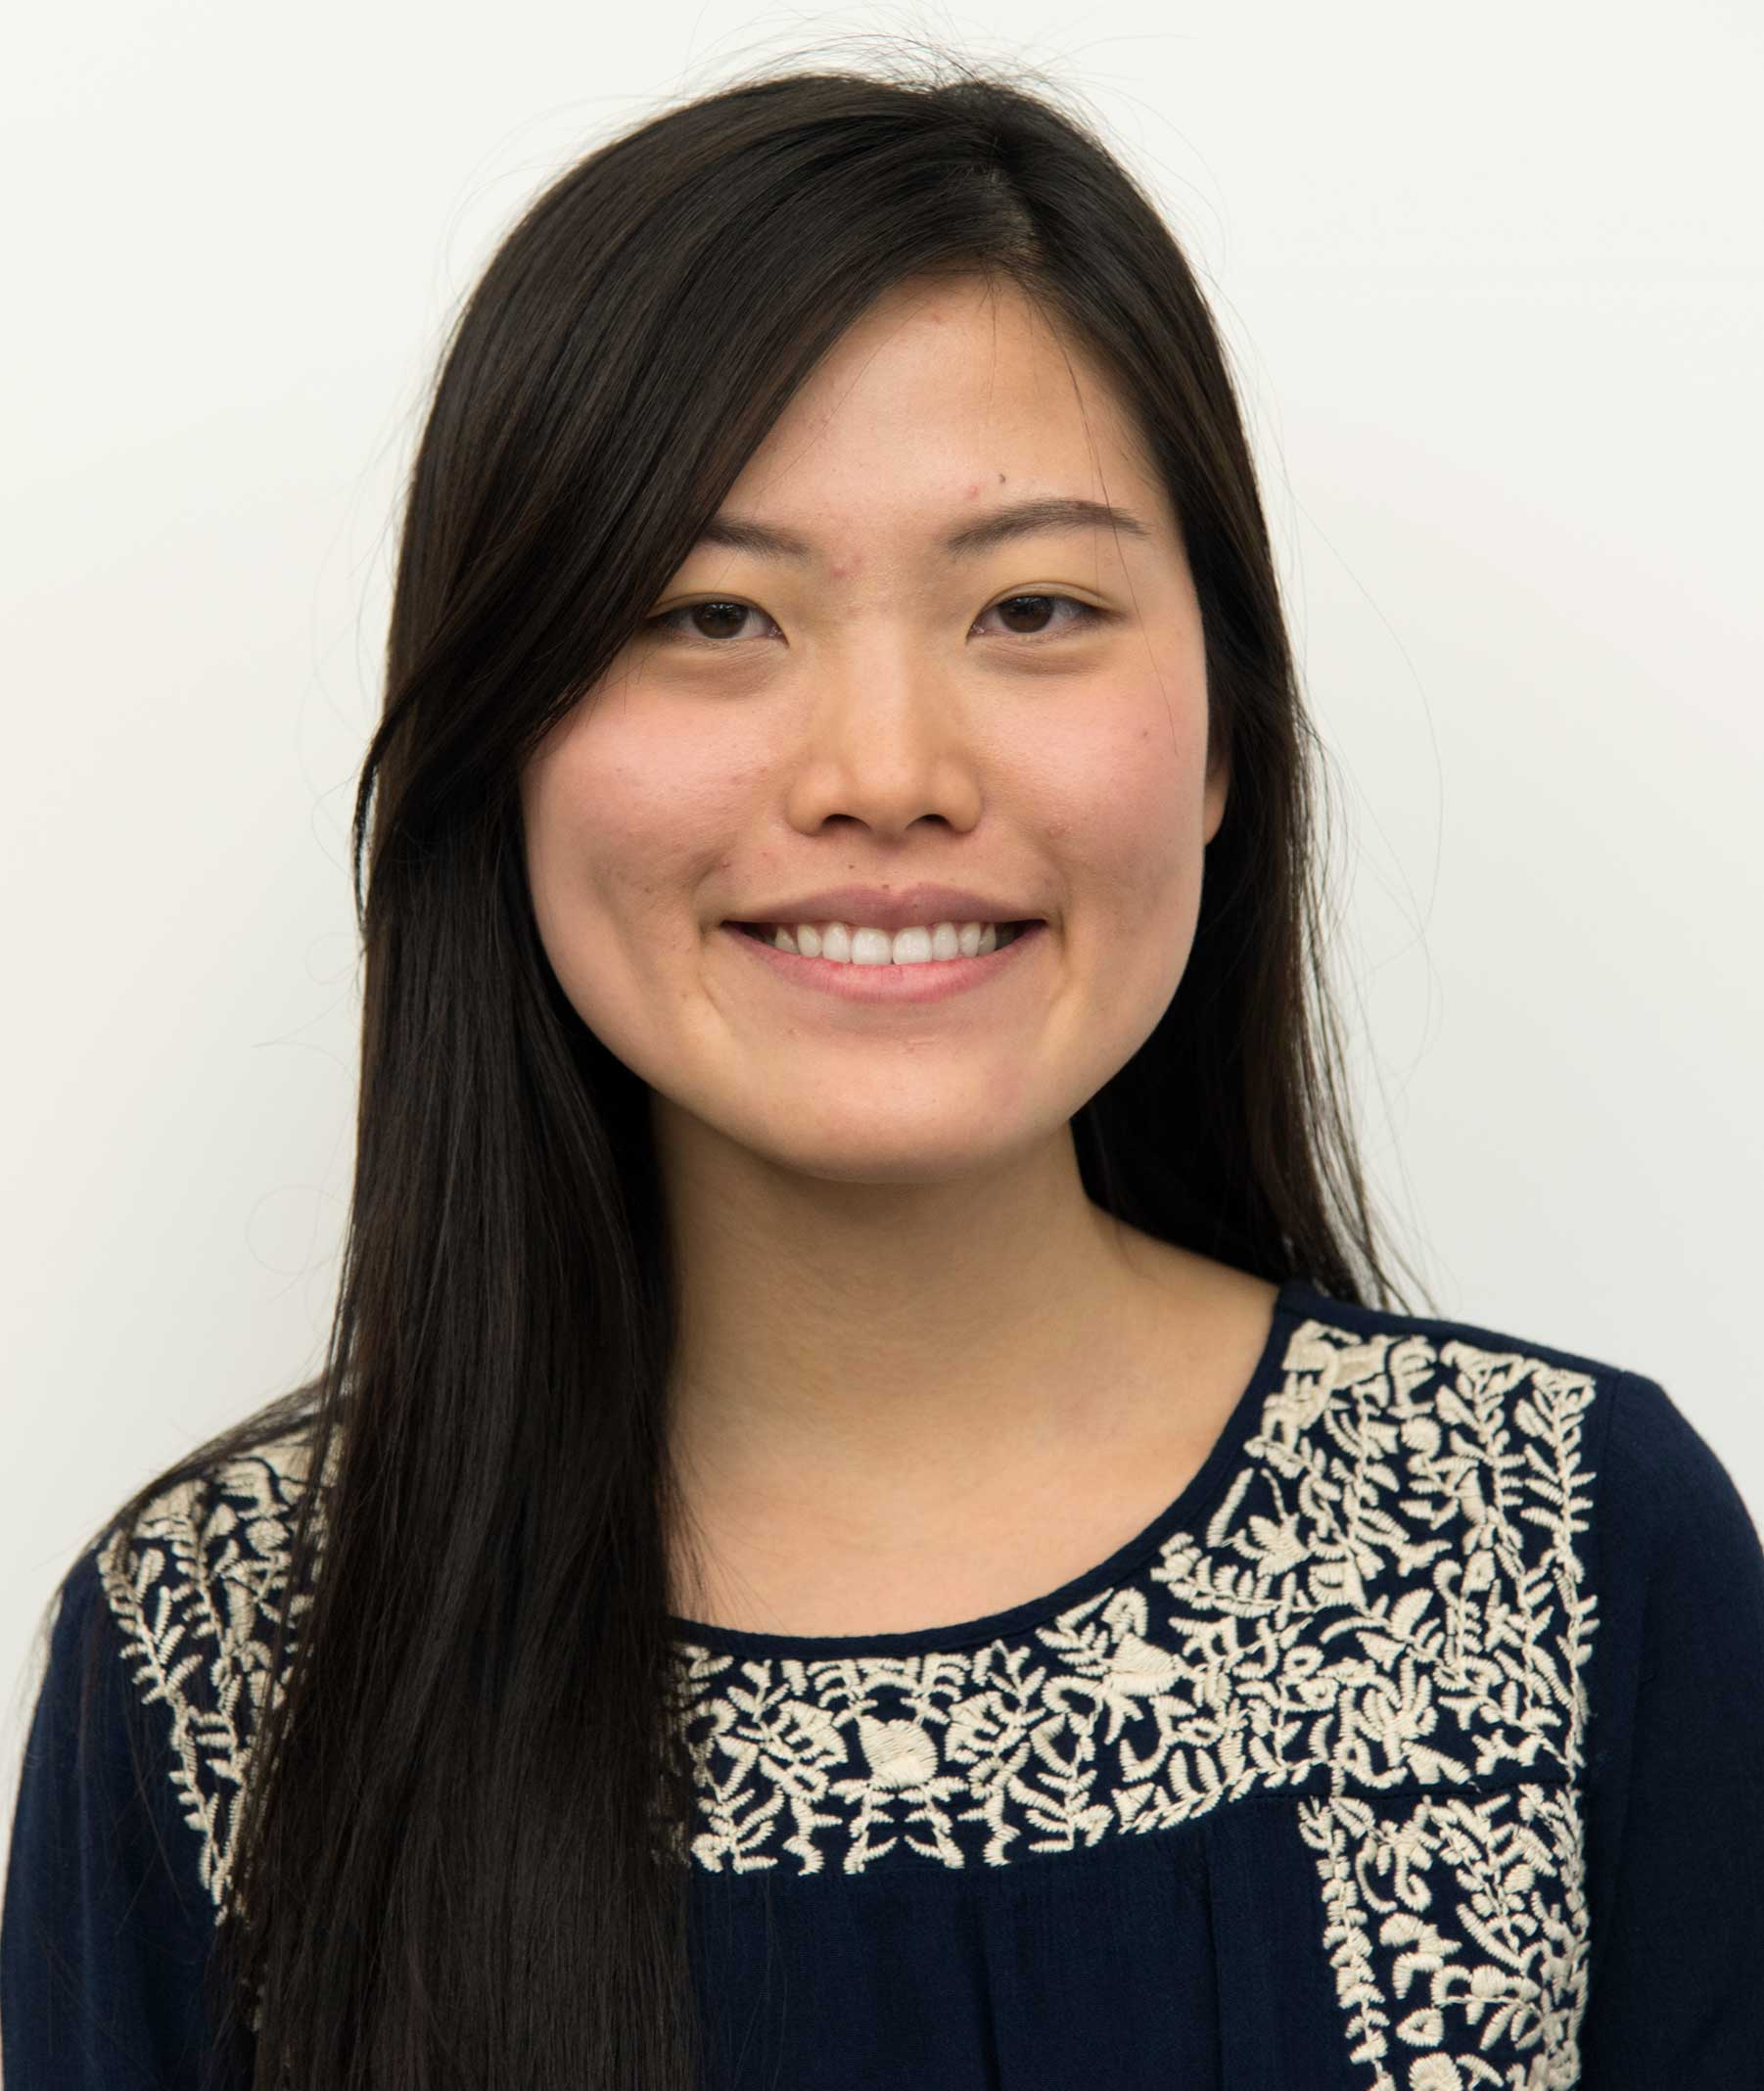 Photo of Nhu Vu, BTP Trainee